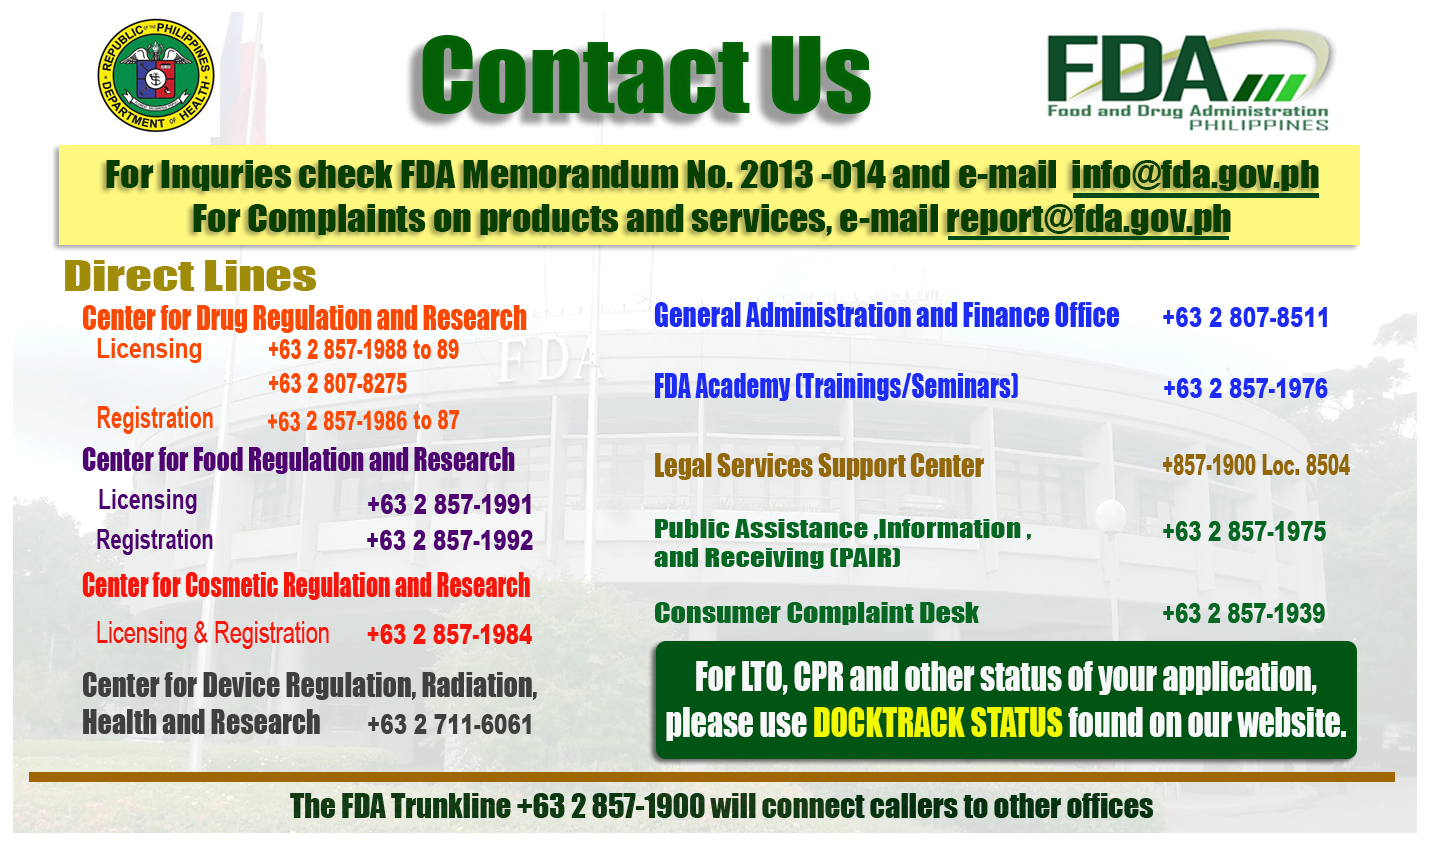 FDA%2Bdirect%2Blines Pharmacist Application Form on application to rent california, application error, application for employment, application clip art, application meaning in science, application in spanish, application to join motorcycle club, application trial, application insights, application for scholarship sample, application to date my son, application service provider, application to be my boyfriend, application database diagram, application template, application for rental, application to join a club, application approved, application cartoon,